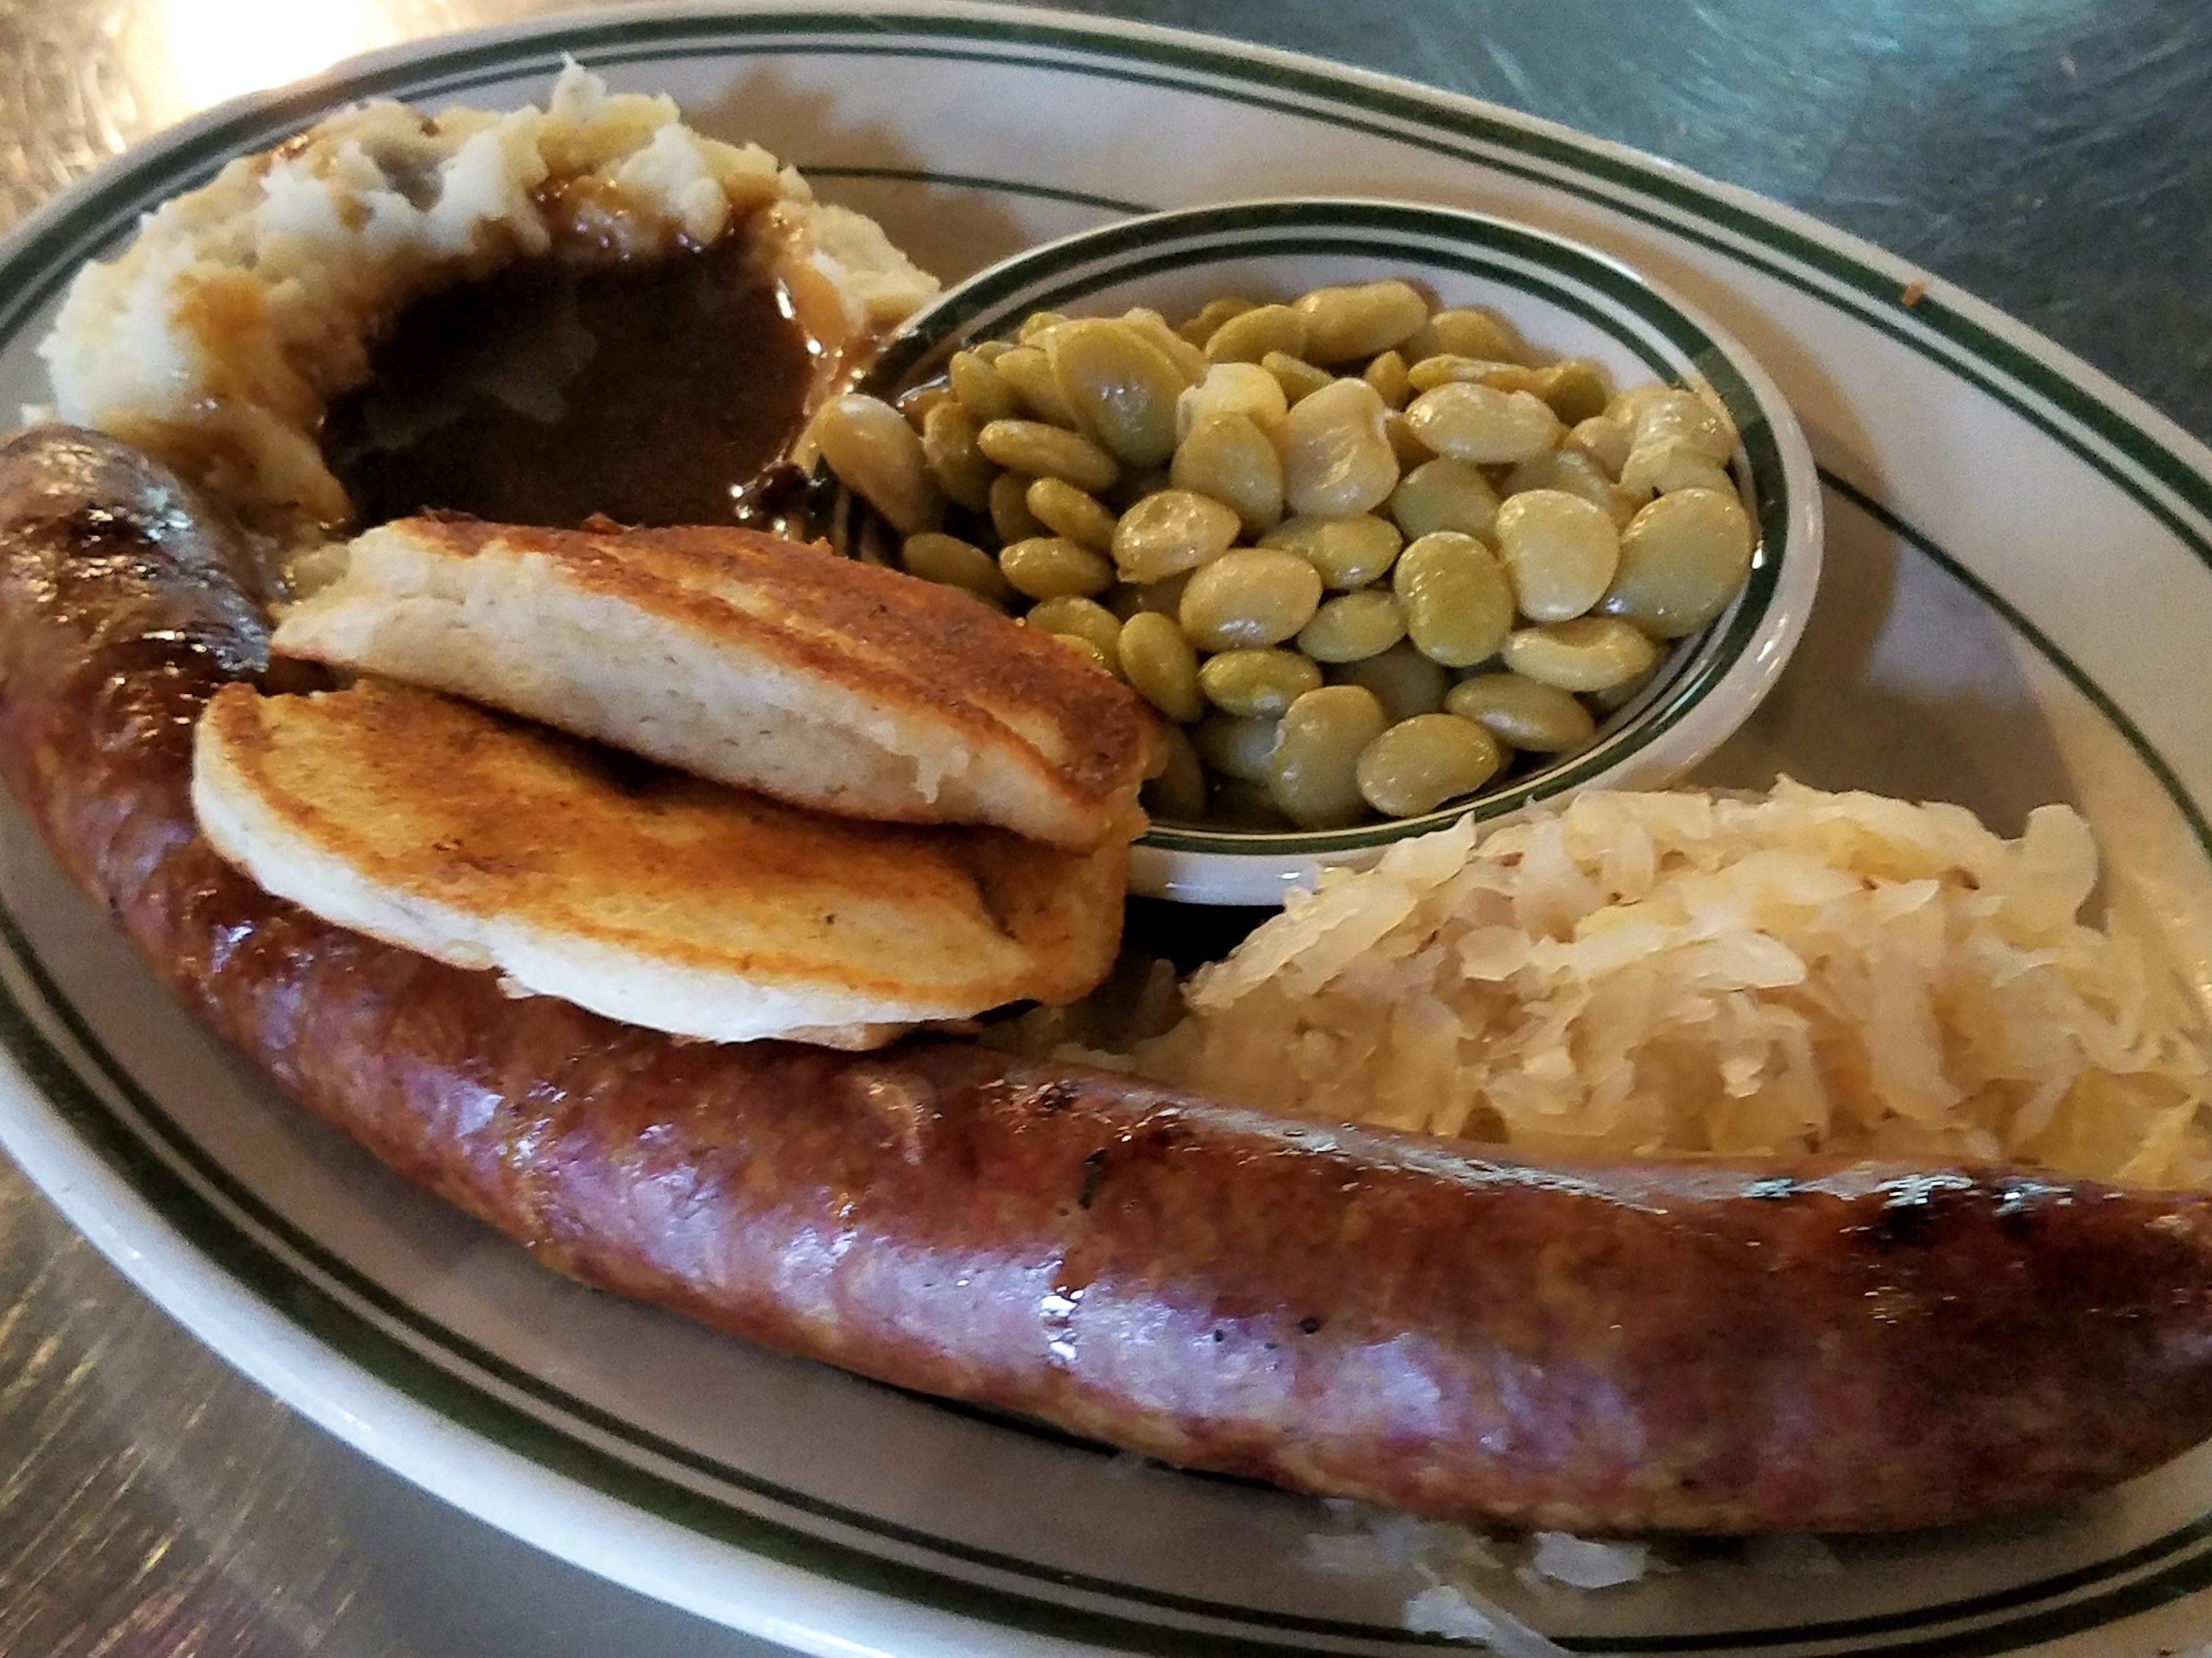 Smoked mett sausage with German sides and fresh-fried cornbread at the Gerst Haus.